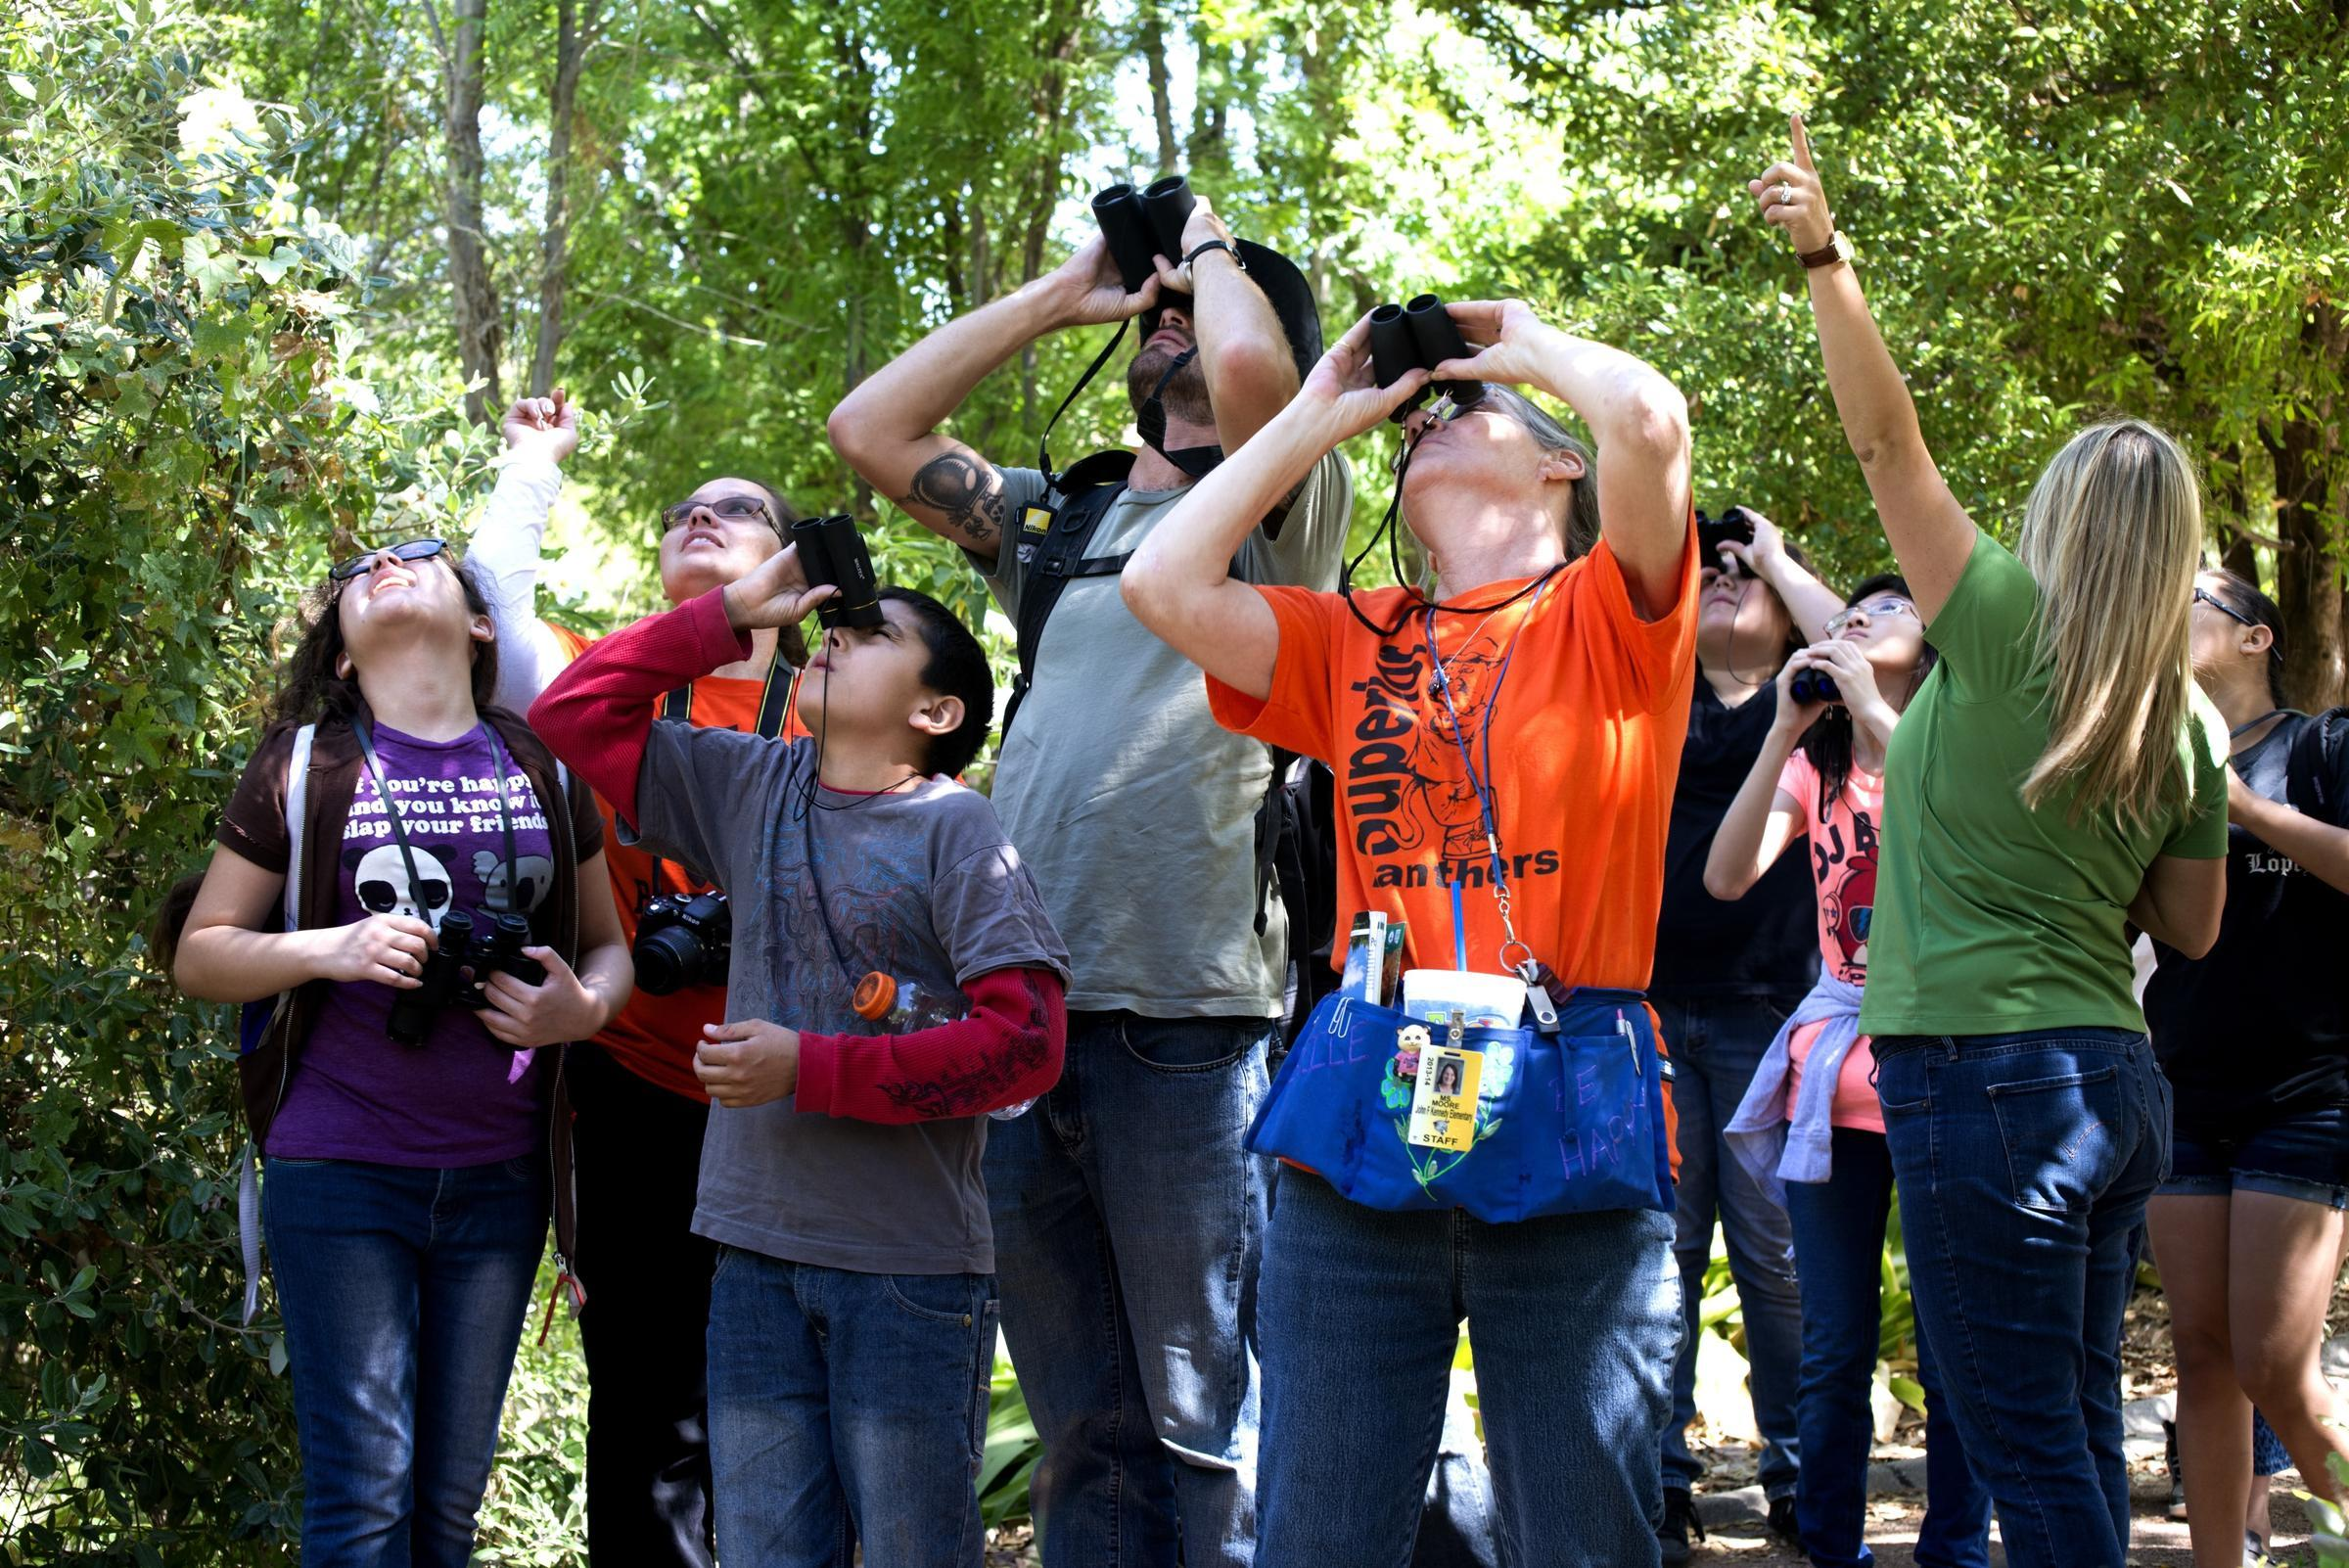 A group of people with binoculars look up into the air.